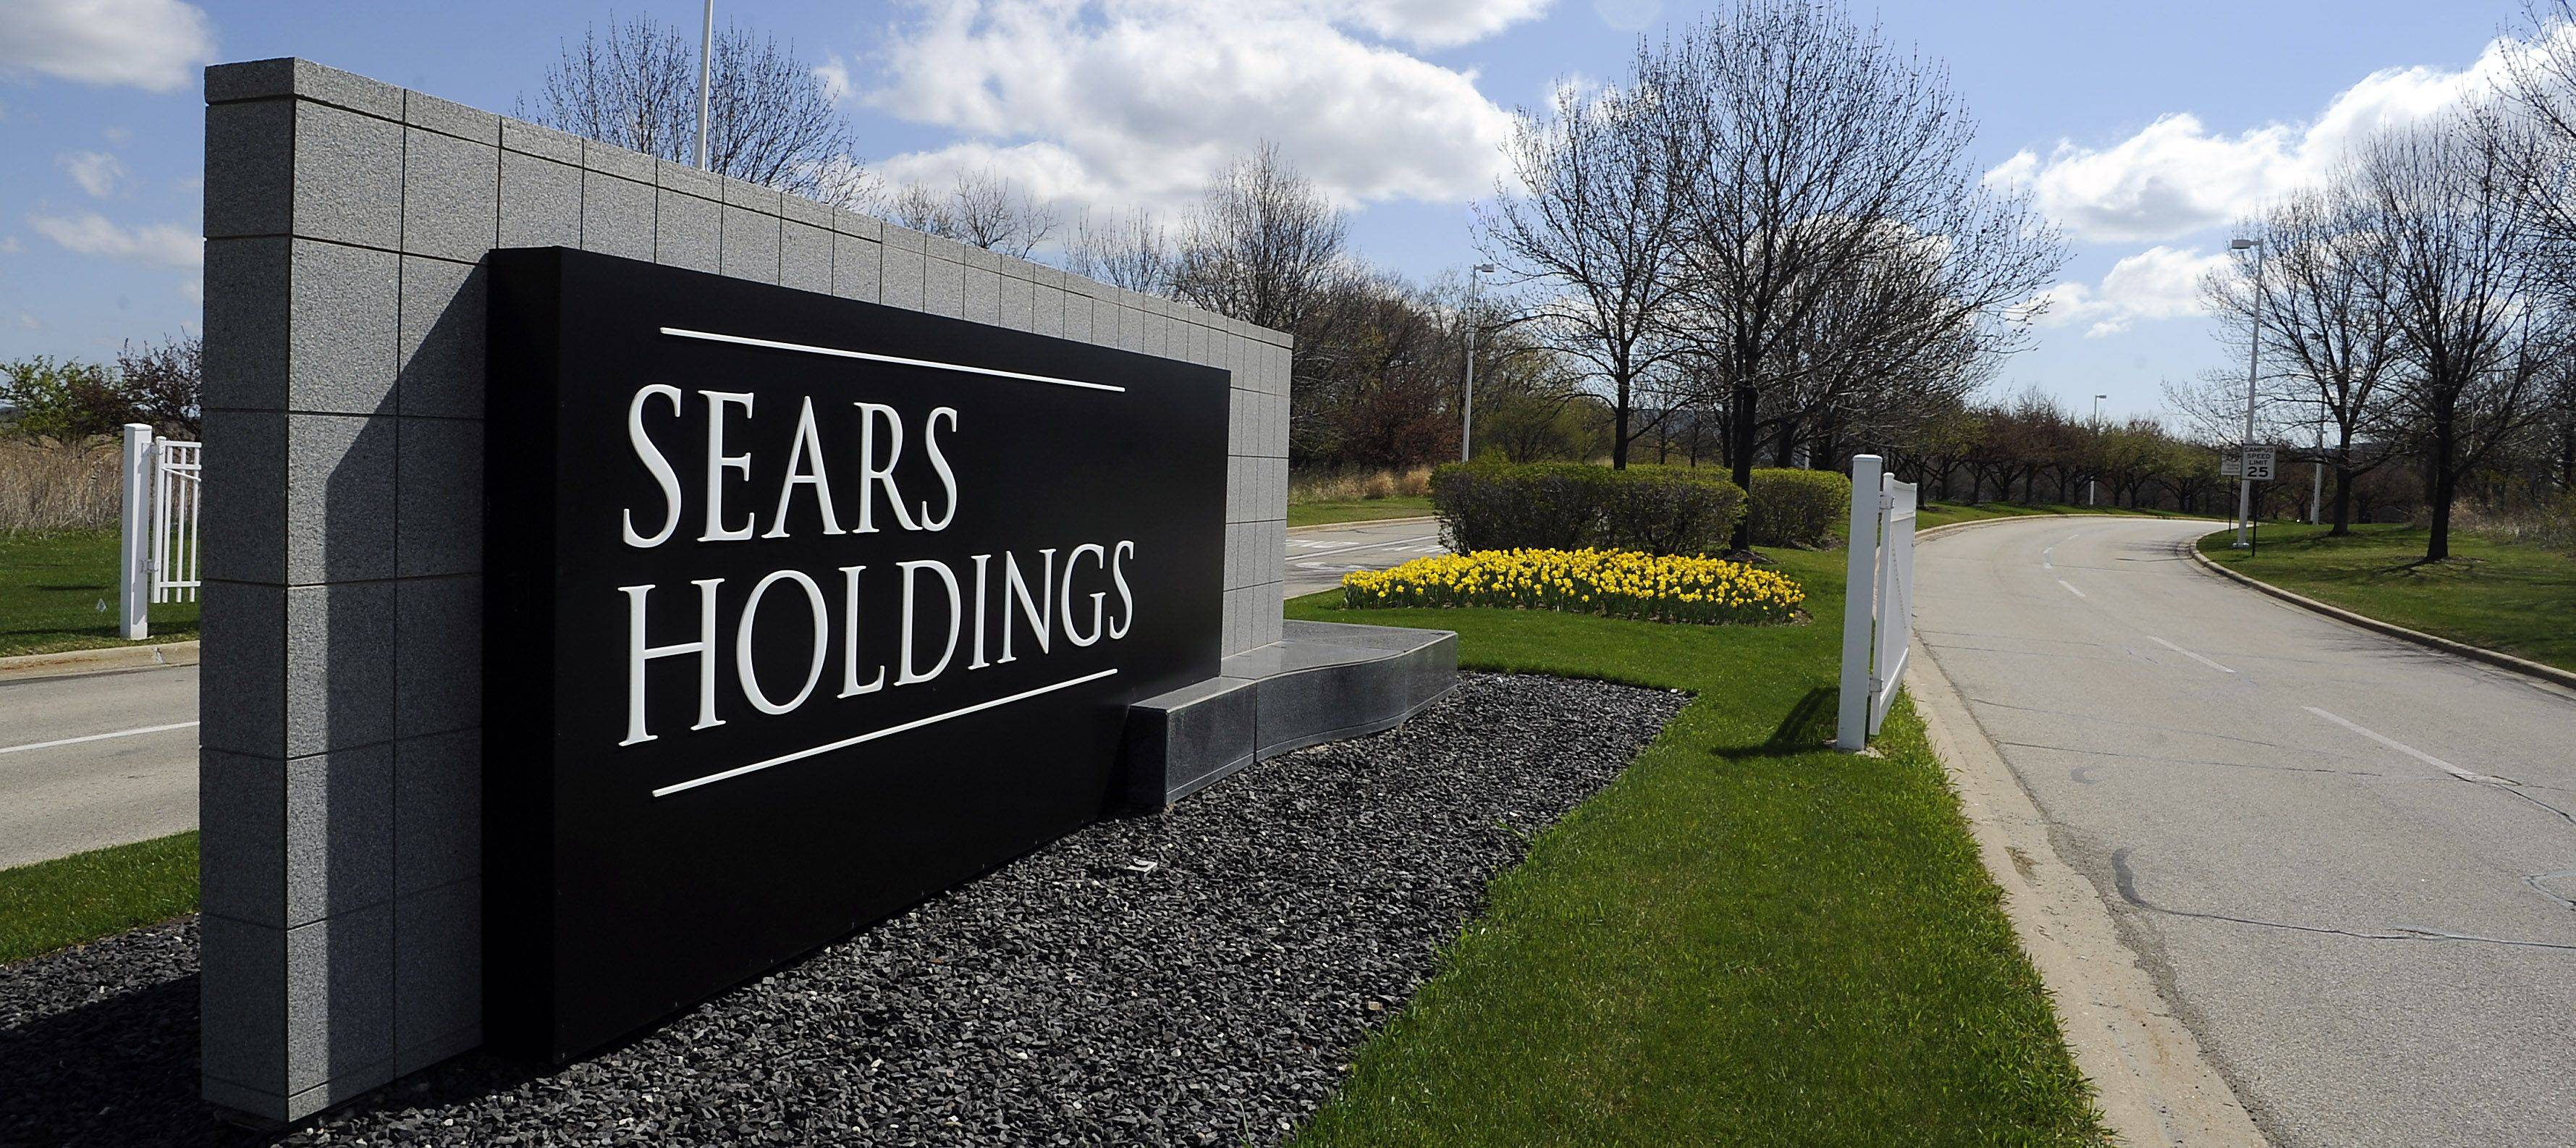 Hoffman Estates officials are worried that Sears Holdings might pack its bags and head out of town, leaving its Prairie Stone campus in Hoffman Estates.